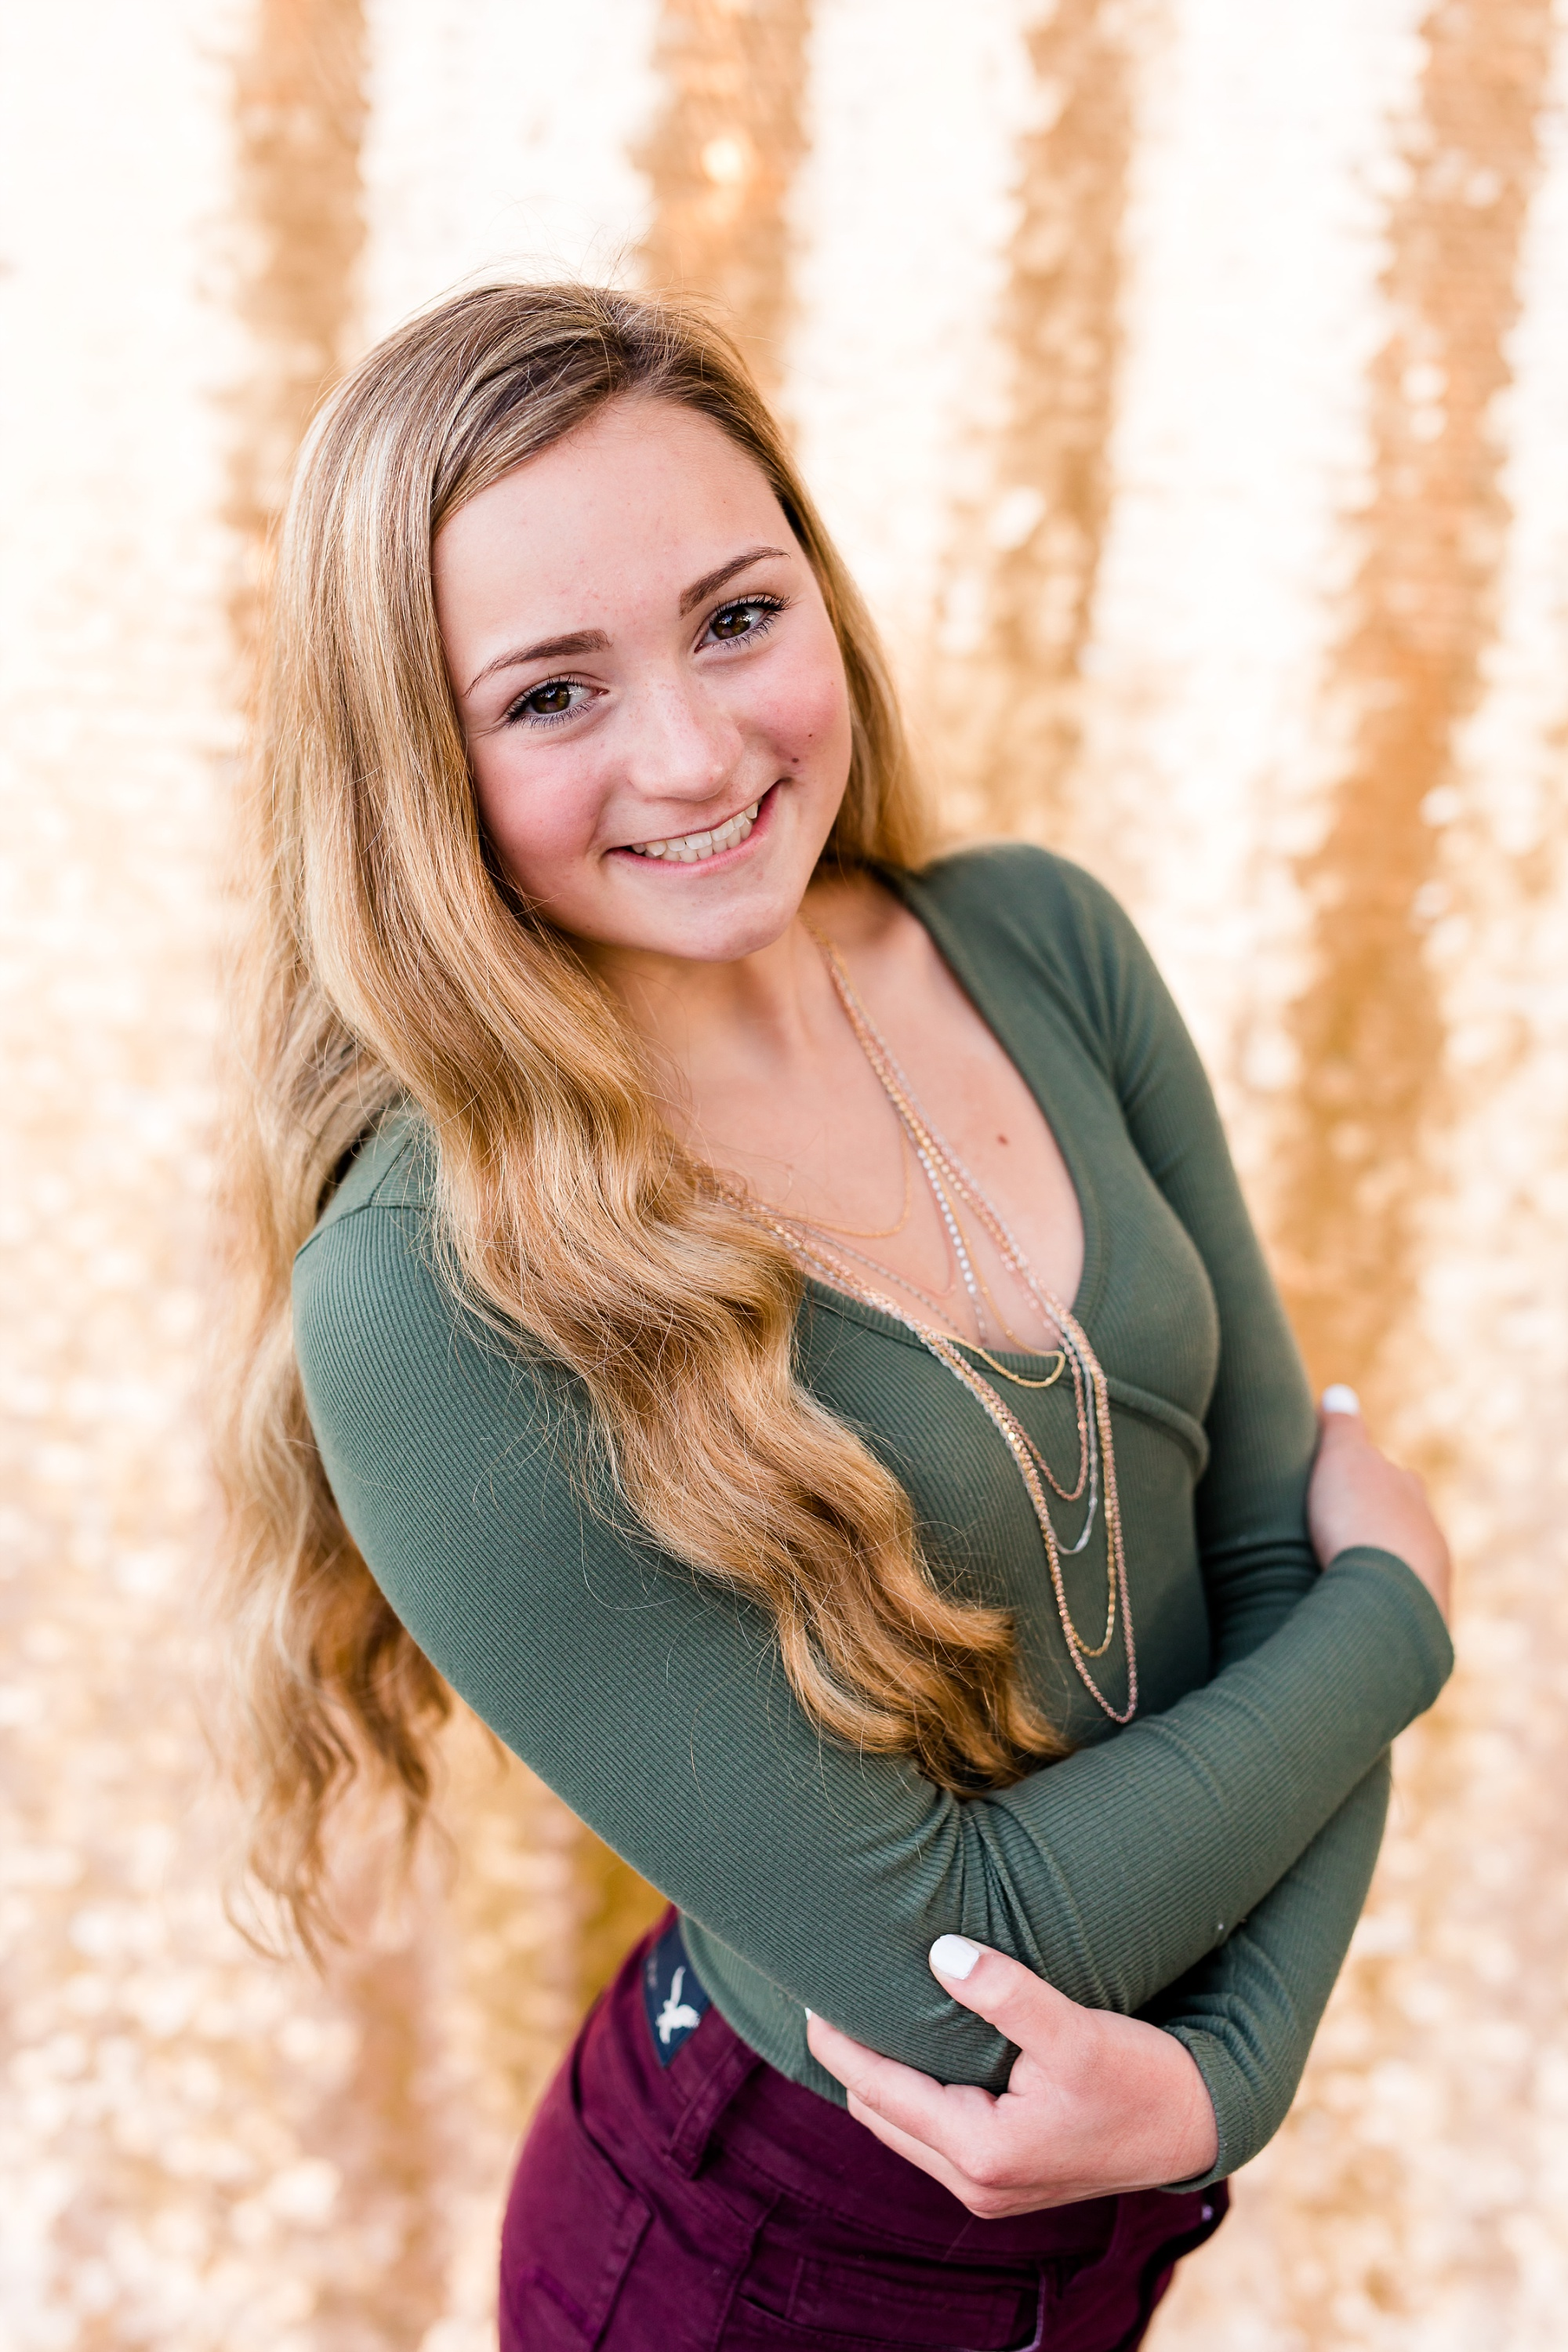 Country Styled High School Senior Pictures on a Farm and Little Cormorant Lake in Minnesota by Amber Langerud with Gold Drop it Modern Backdrop